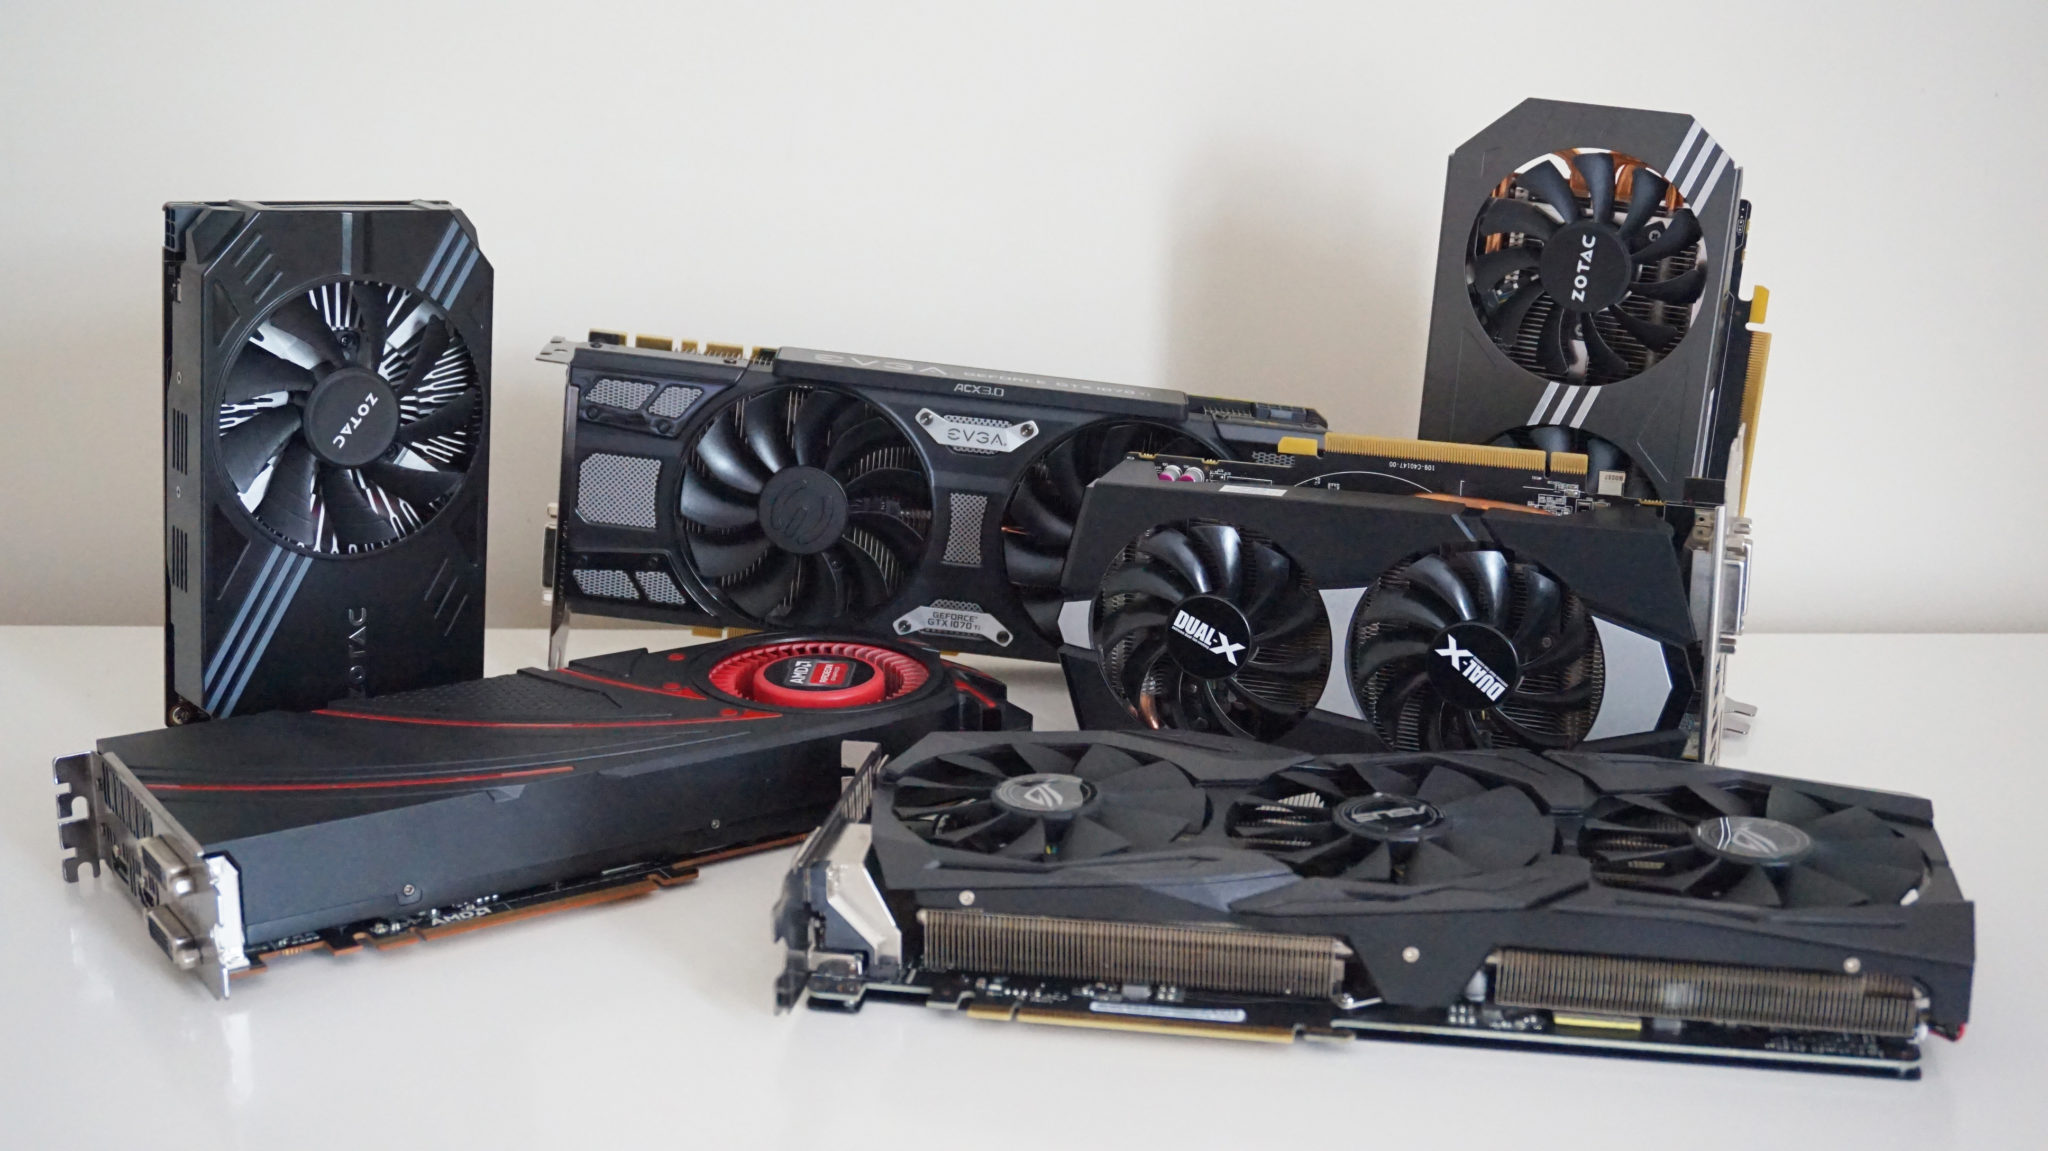 The best Black Friday graphics card deals and prices